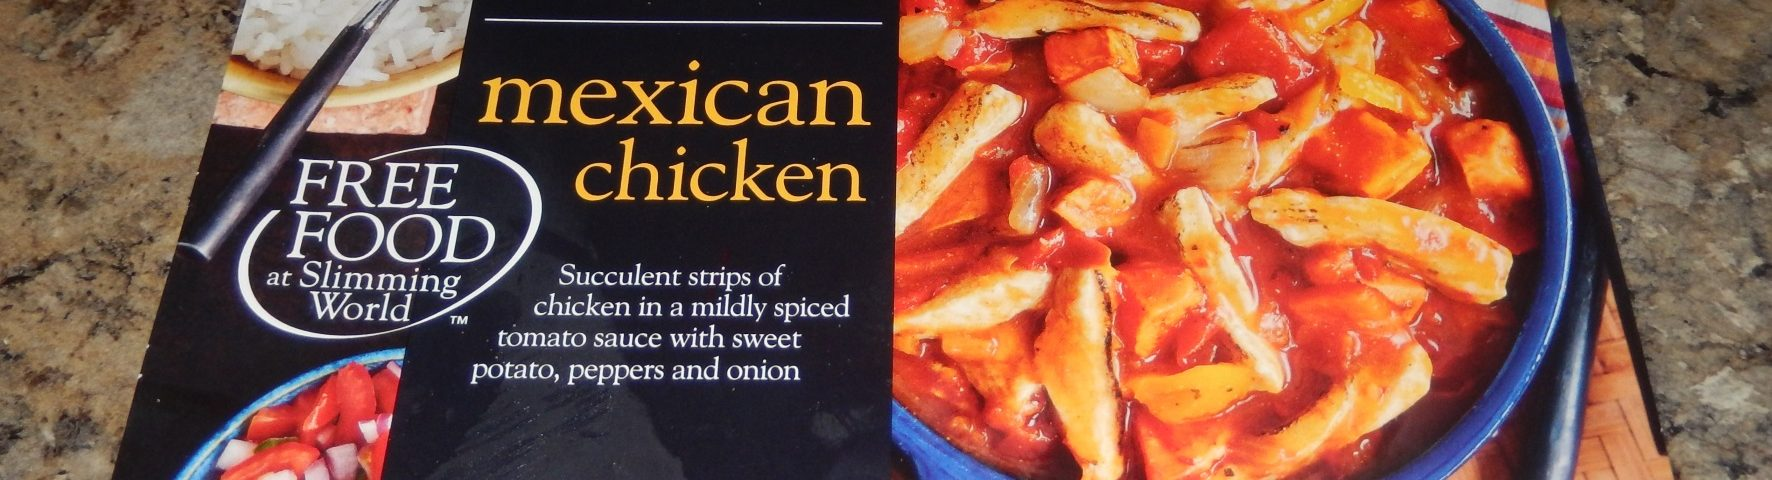 Slimming World Mexican Chicken Packaging